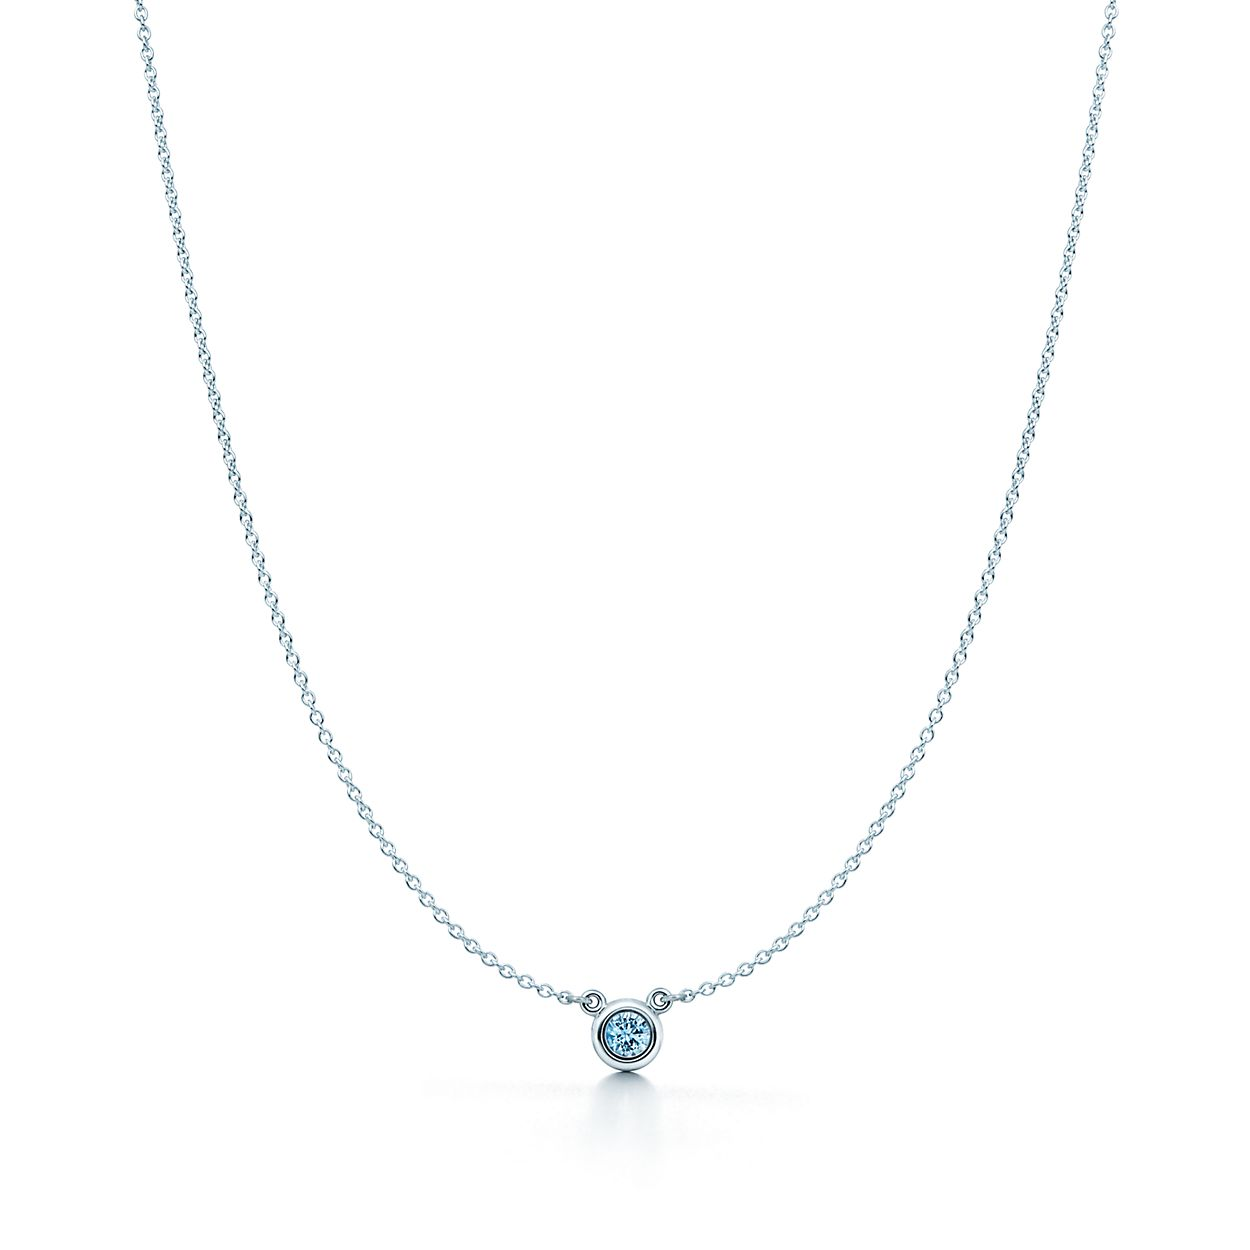 pendant marine jewelry neckla il fullxfull necklace aqua aquamarine stone products march birthstone duco raw hawkhouse